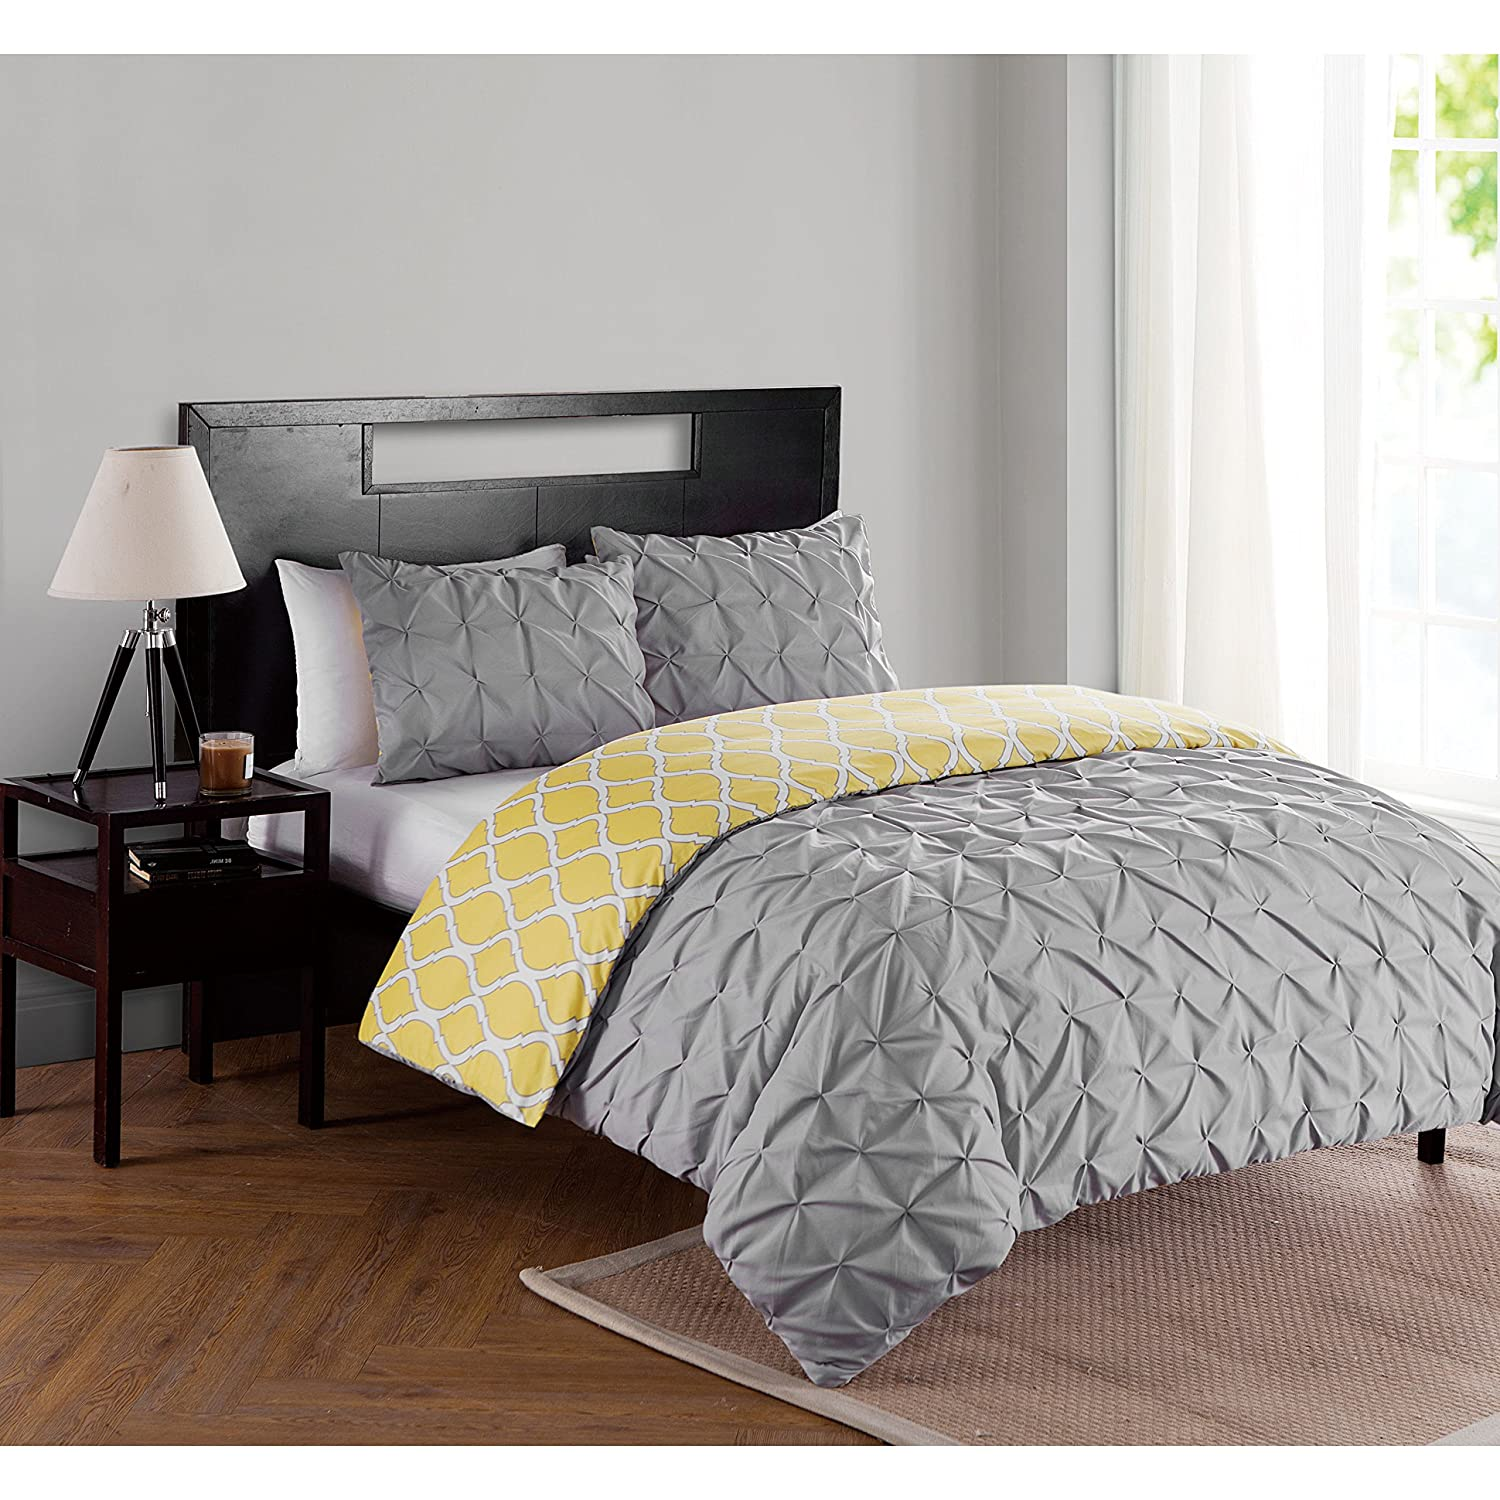 2 Piece Charcoal Grey Yellow Ikat Pintuck Textured Duvet Cover Twin Xl Set, Gray Solid Color Trellis Pattern Reversible Adults Bedding Master Bedroom Modern Gorgeous Comfortable, Polyester